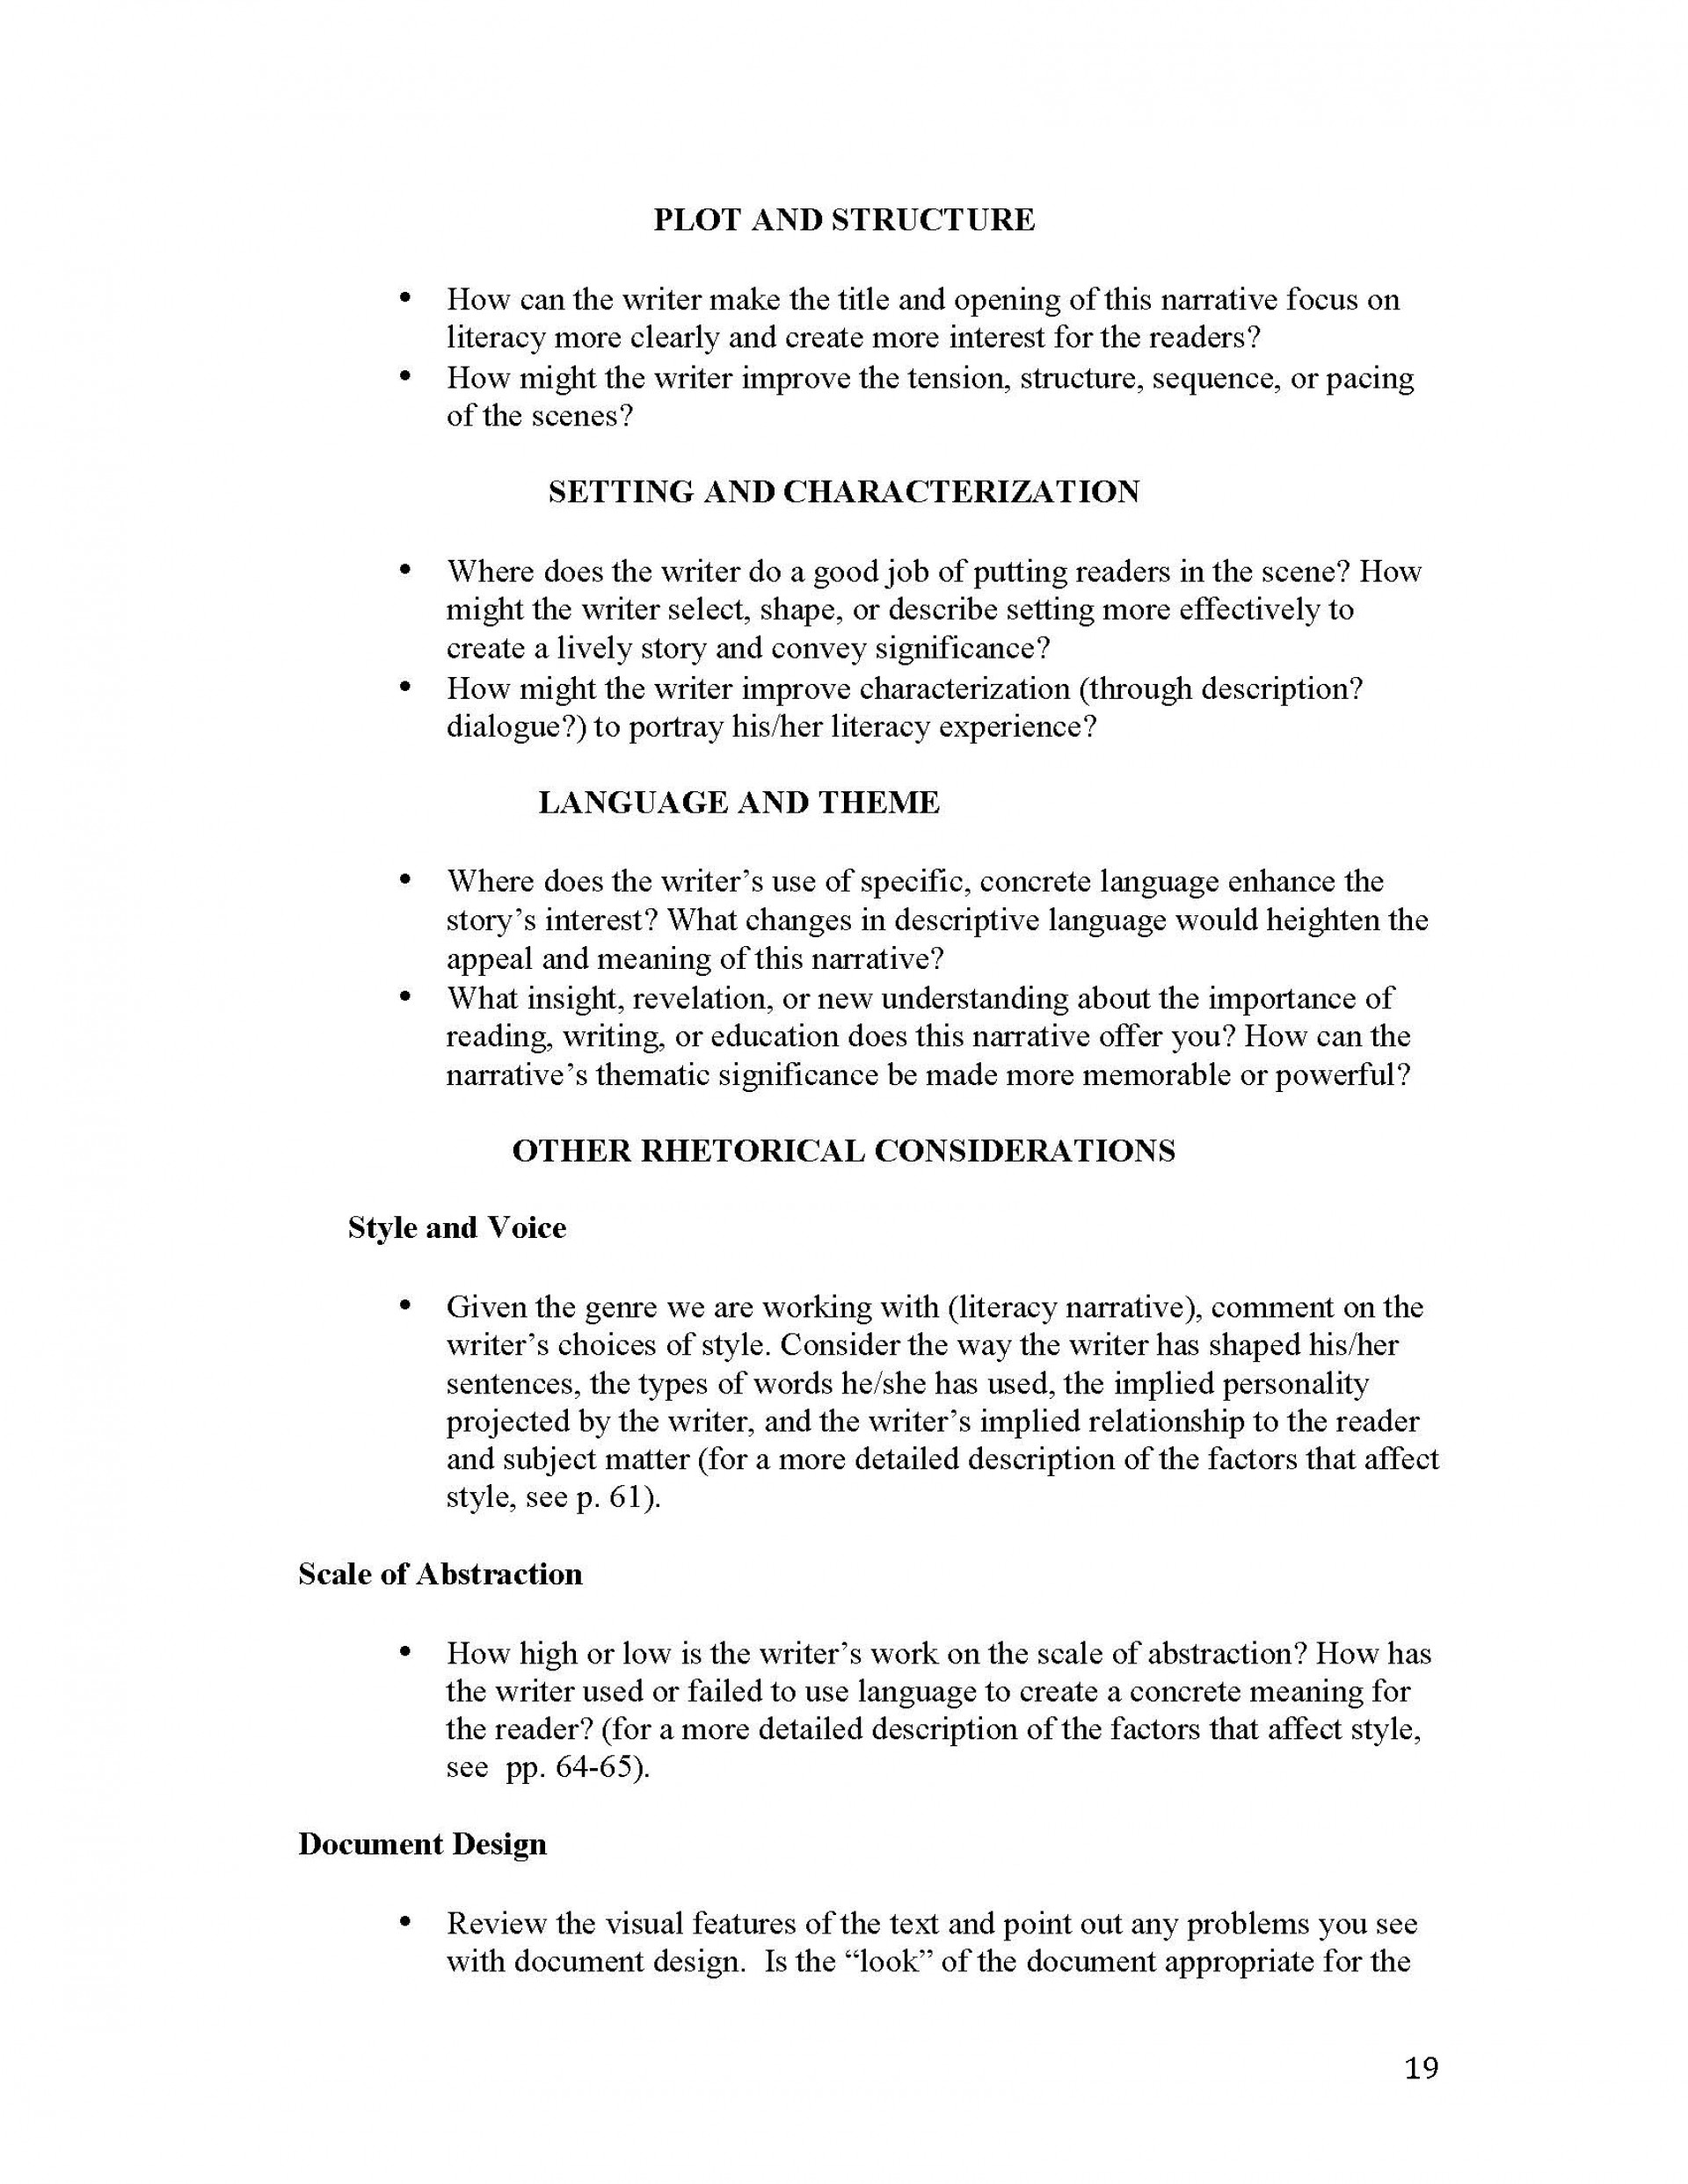 011 Essay Example Unit 1 Literacy Narrative Instructor Copy Page 19 Wonderful Outline College Template Personal Examples 1920